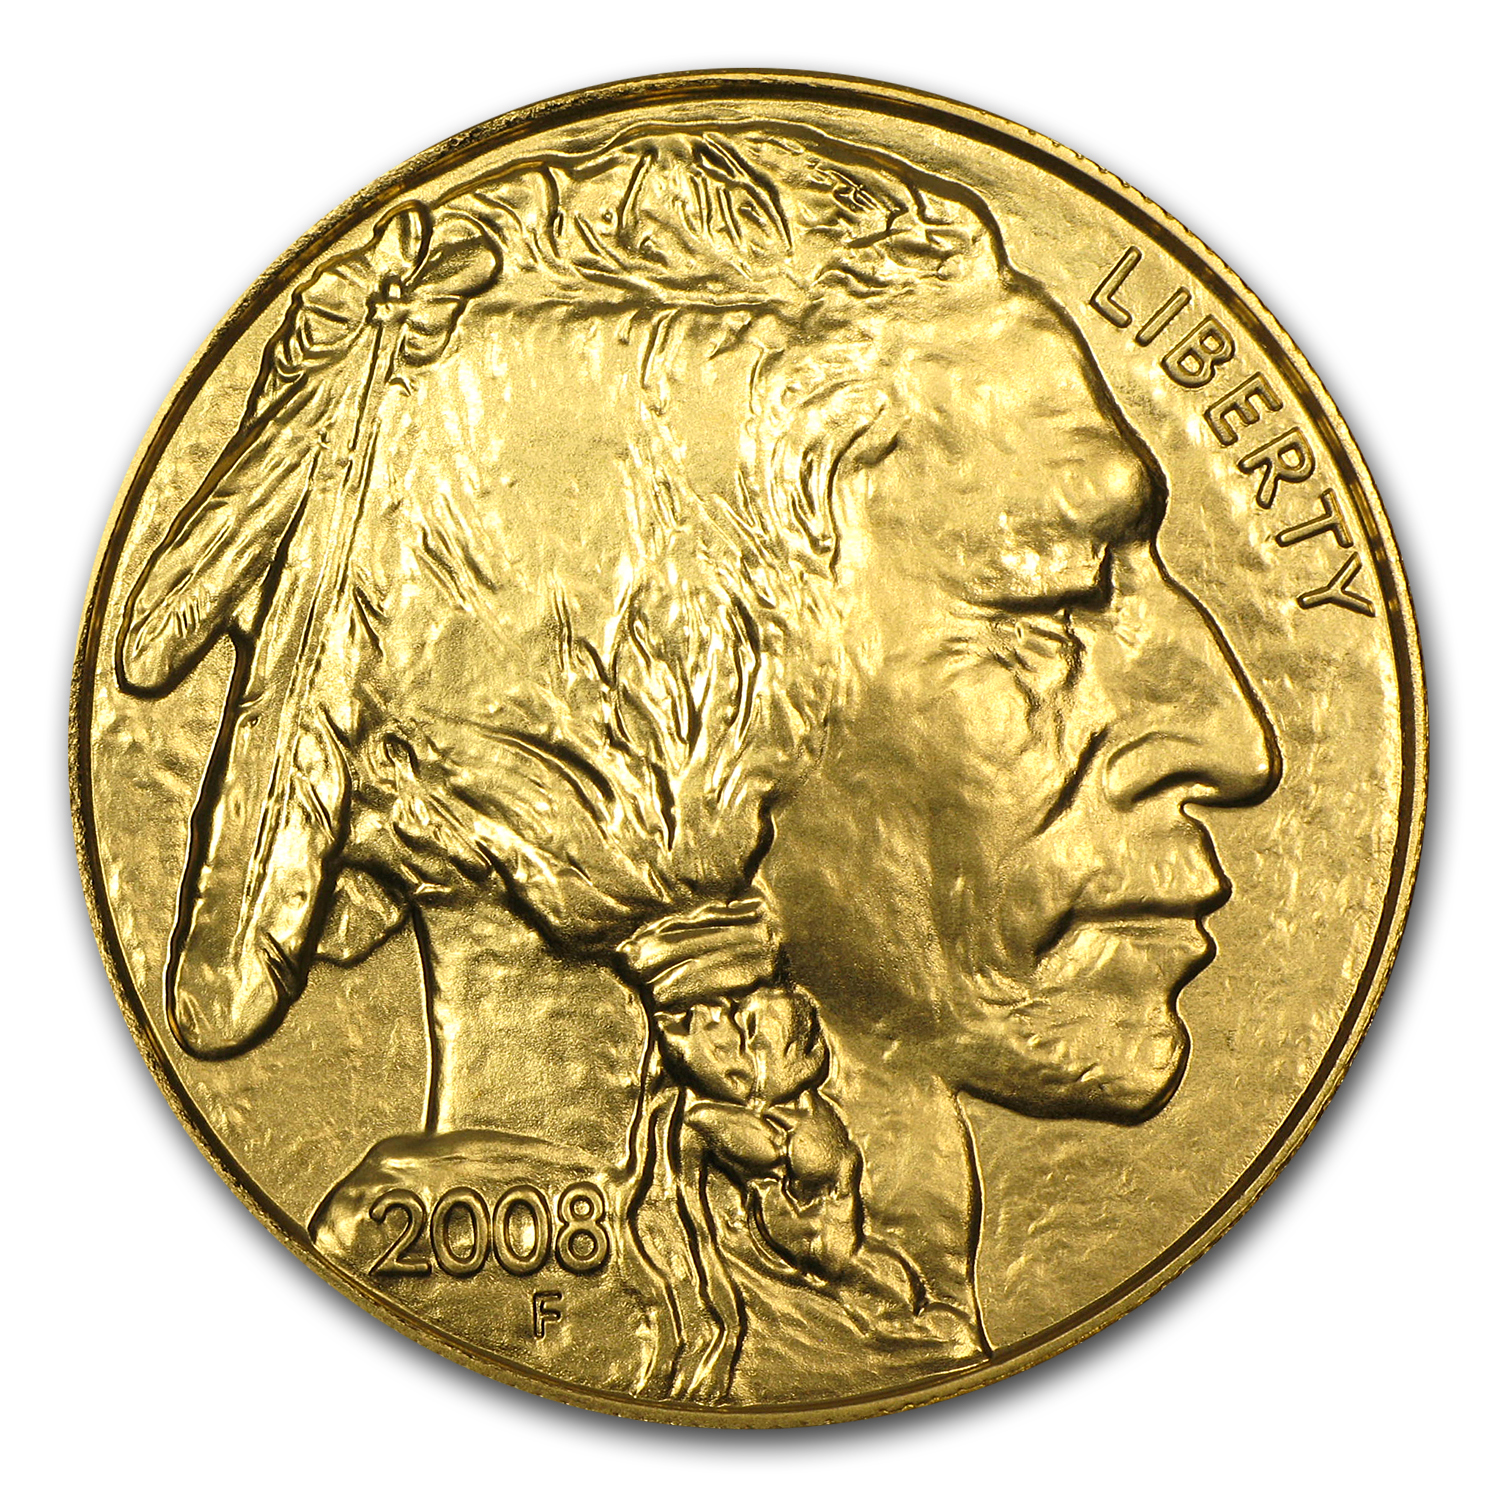 2008 1 oz Gold Buffalo BU